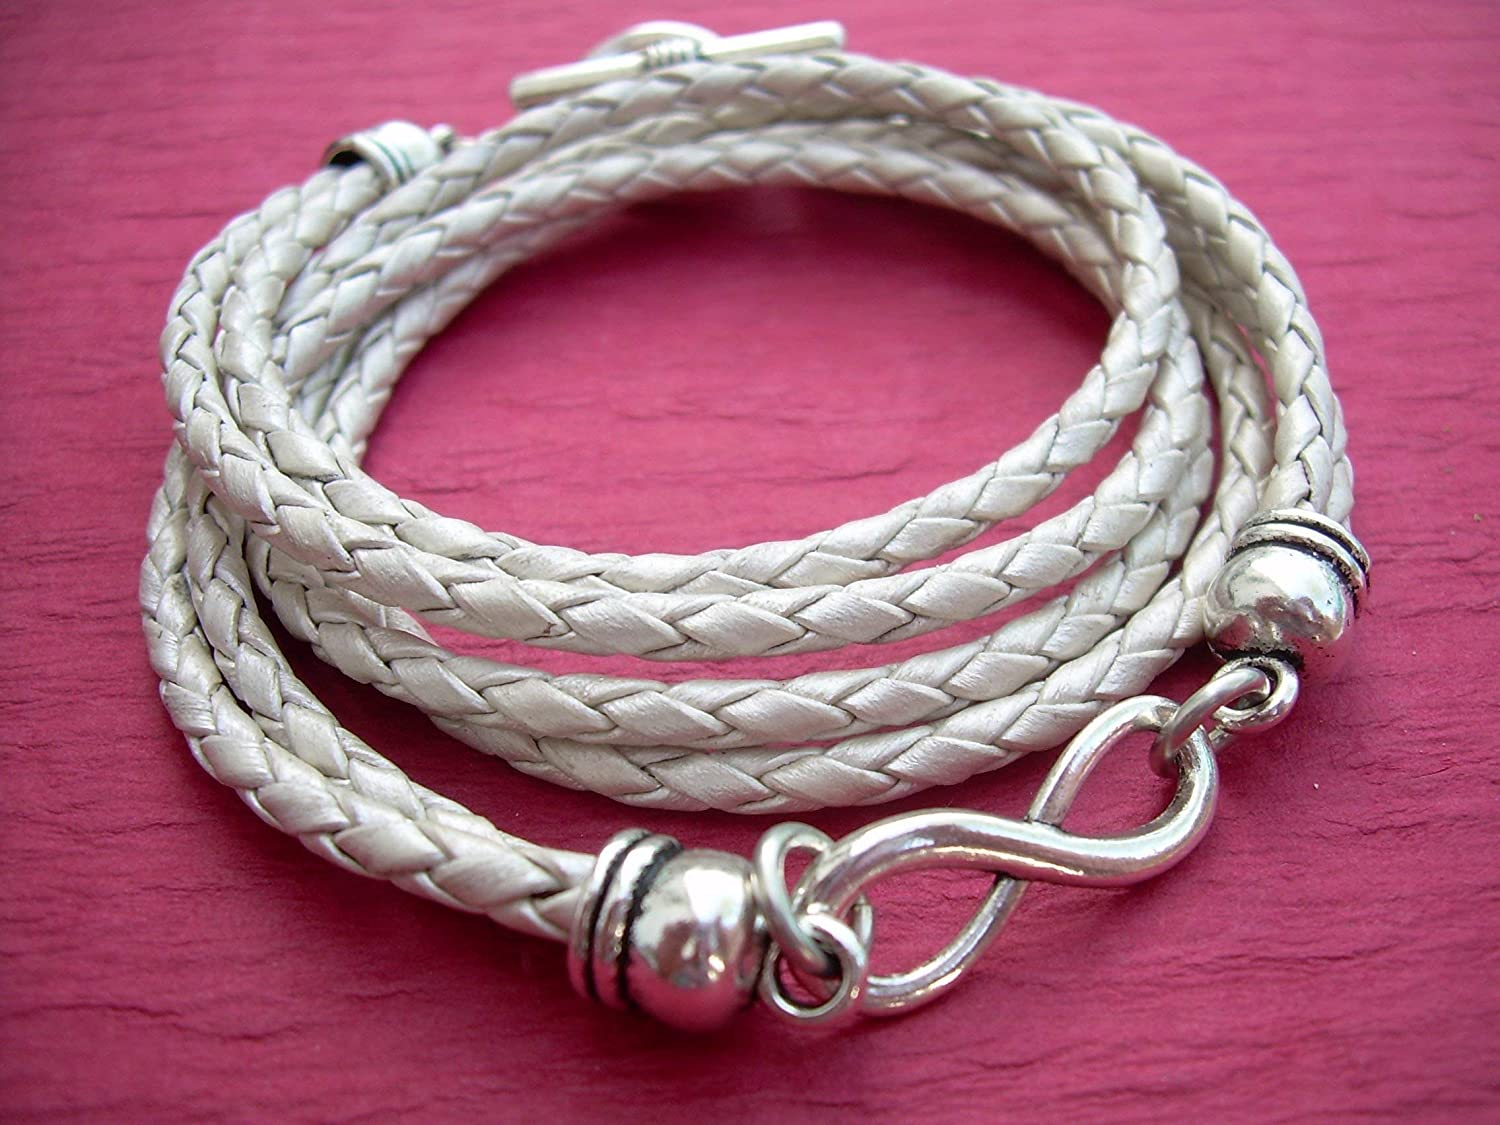 Leather Bracelet Infinity Metallic Inexpensive Pearl Braided To